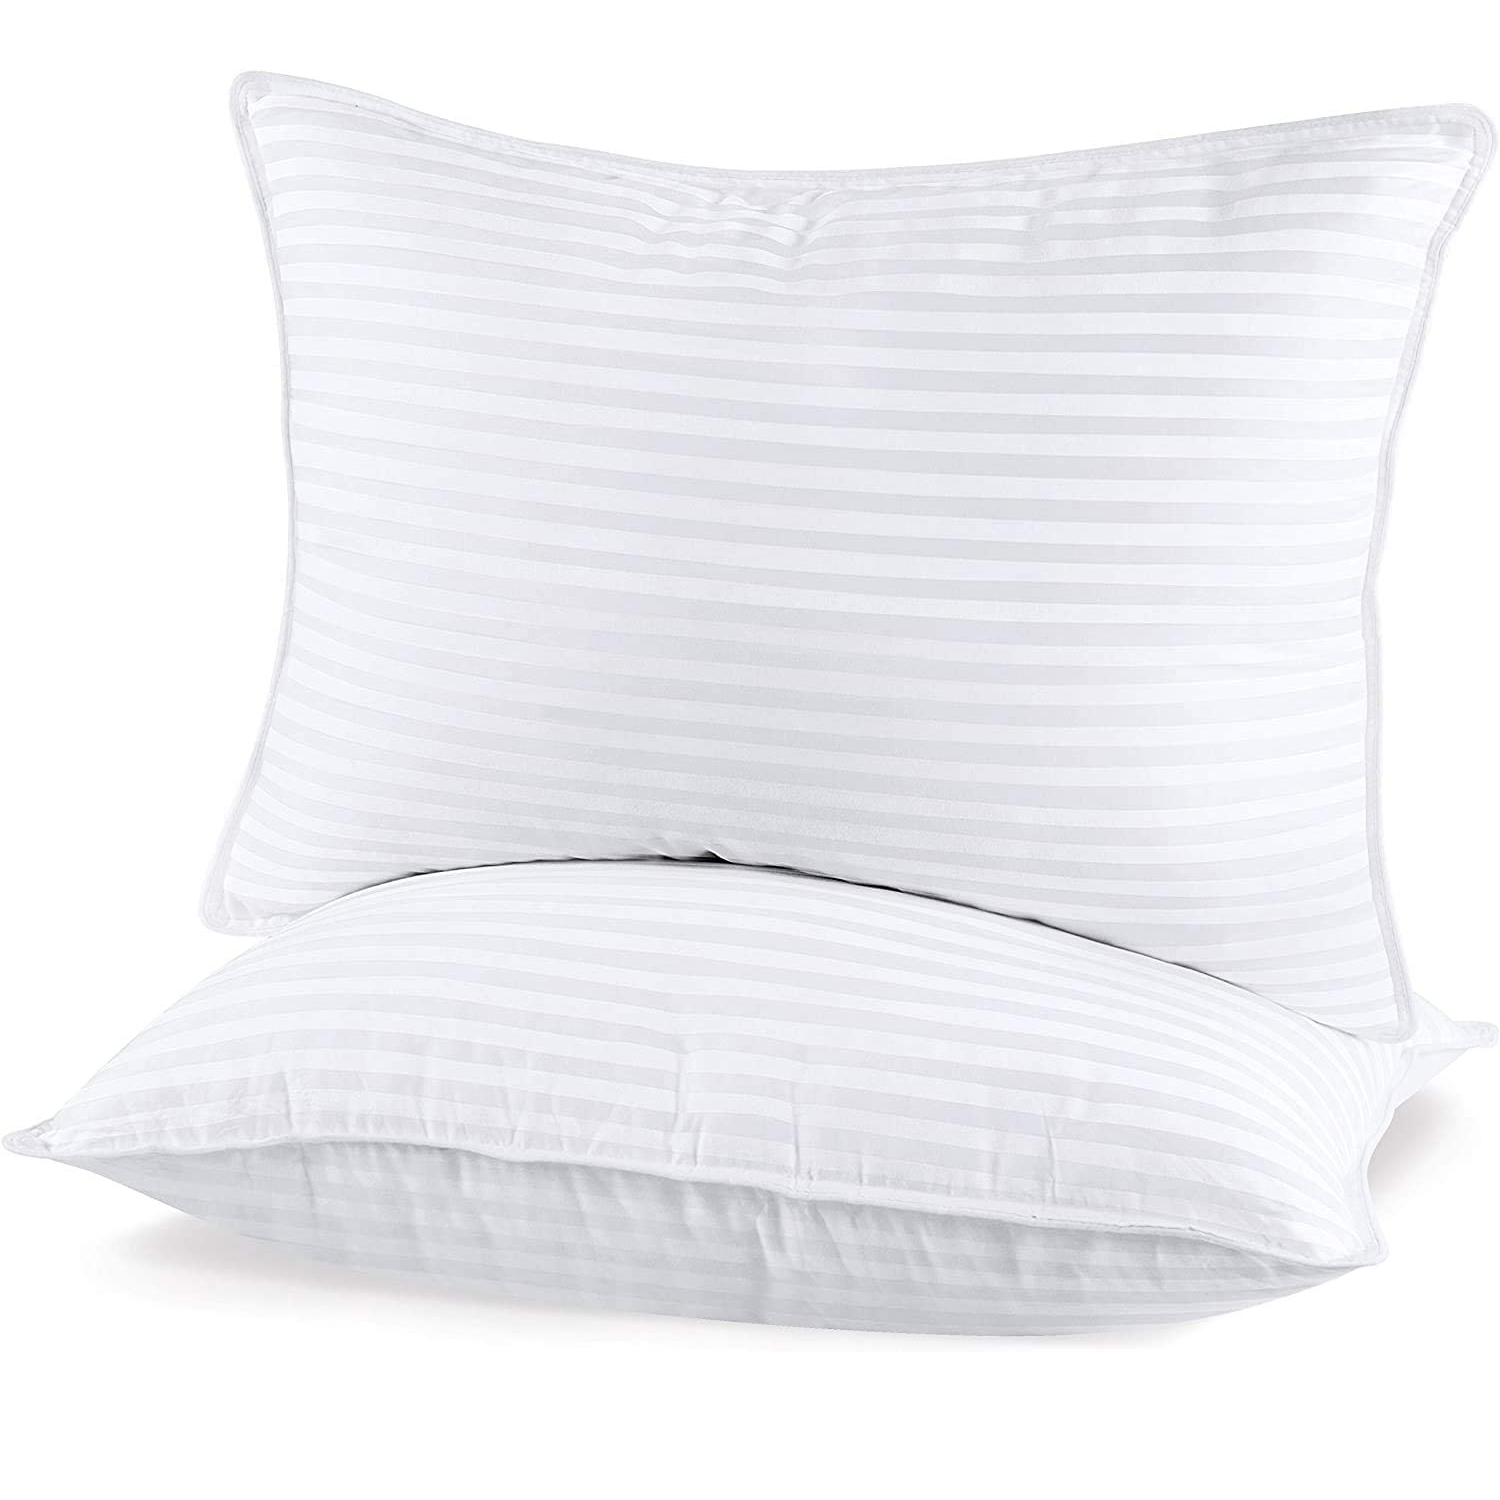 Utopia Bedding Bed Pillows for Sleeping Standard Size, Set of 2,